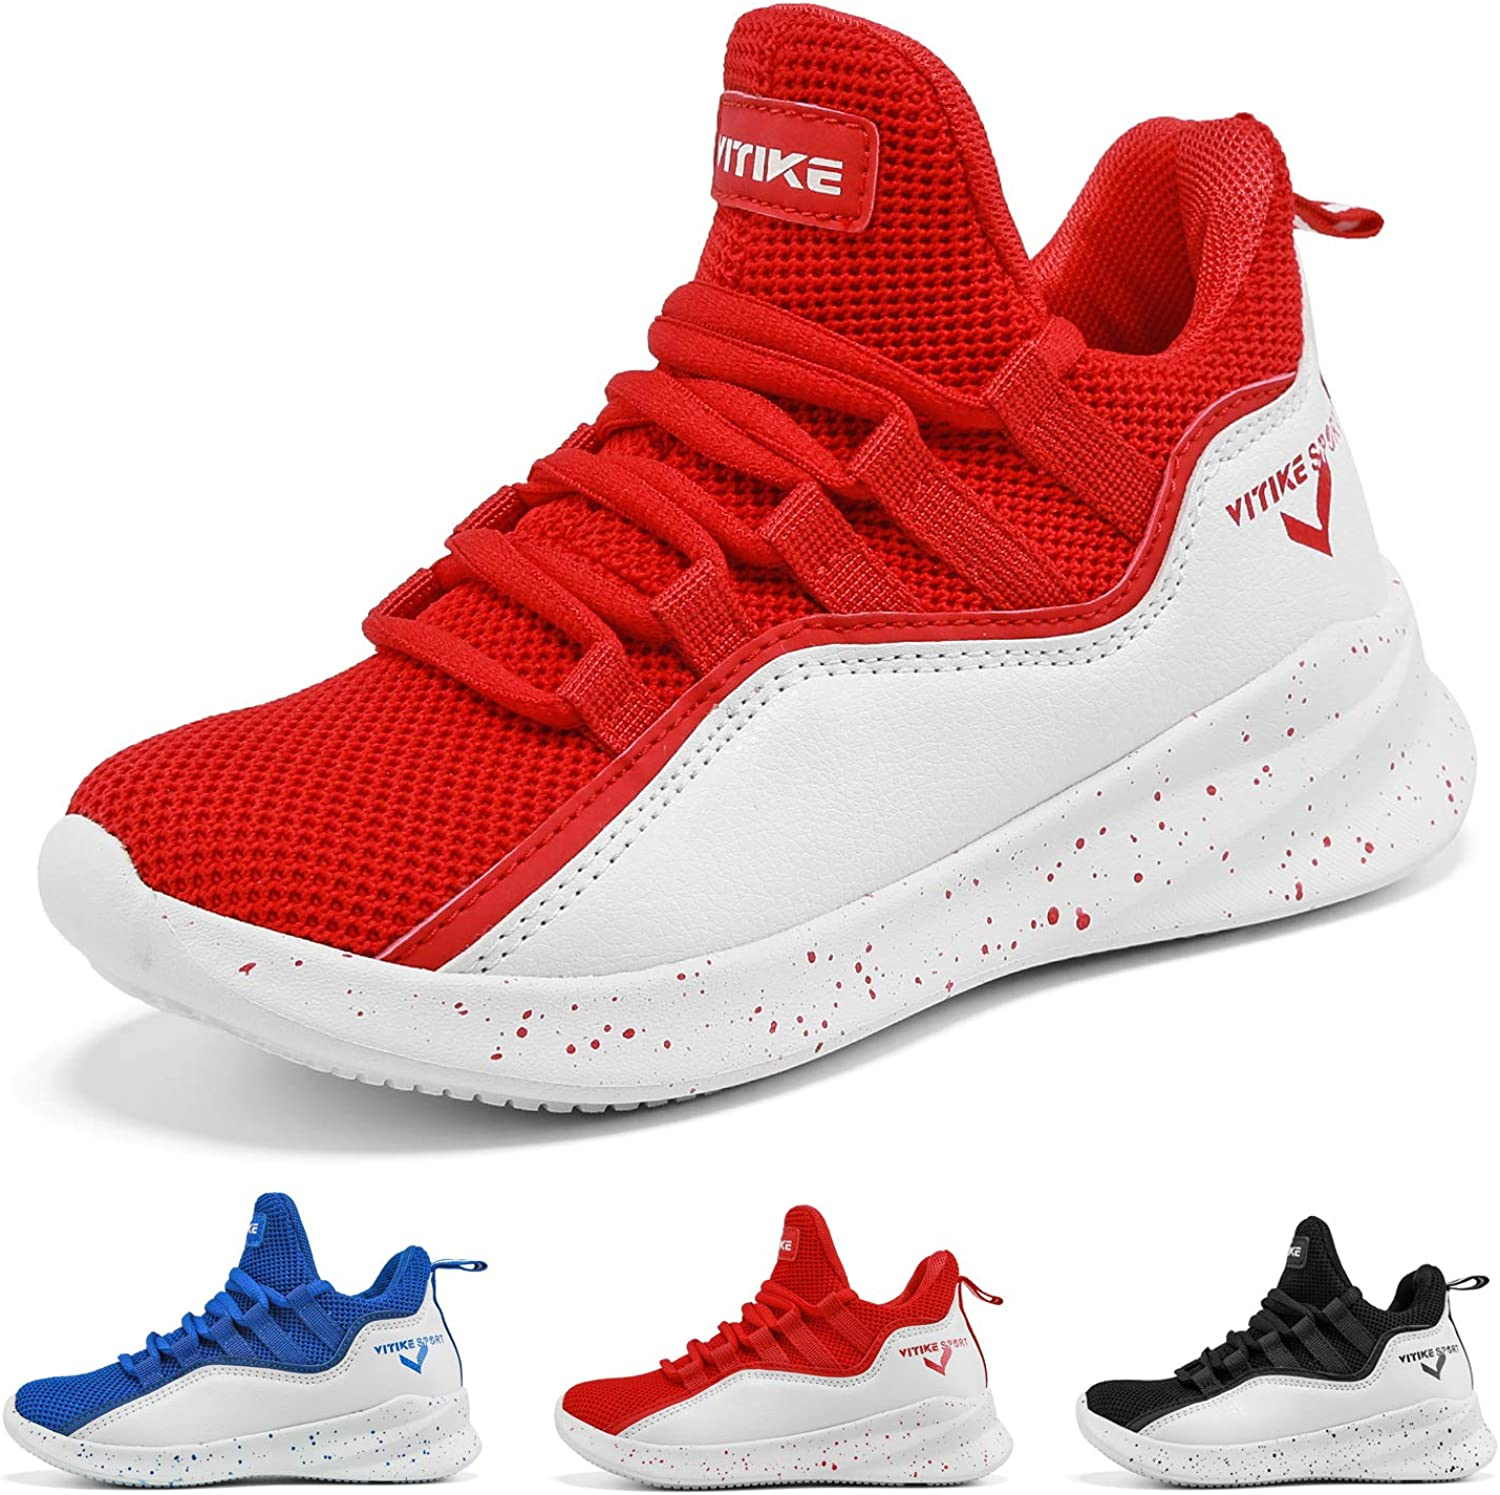 WETIKE Kid's Basketball shoes High-Top Sneakers Outdoor Trainers Durable Sport shoes(Little Kid Big Kid)